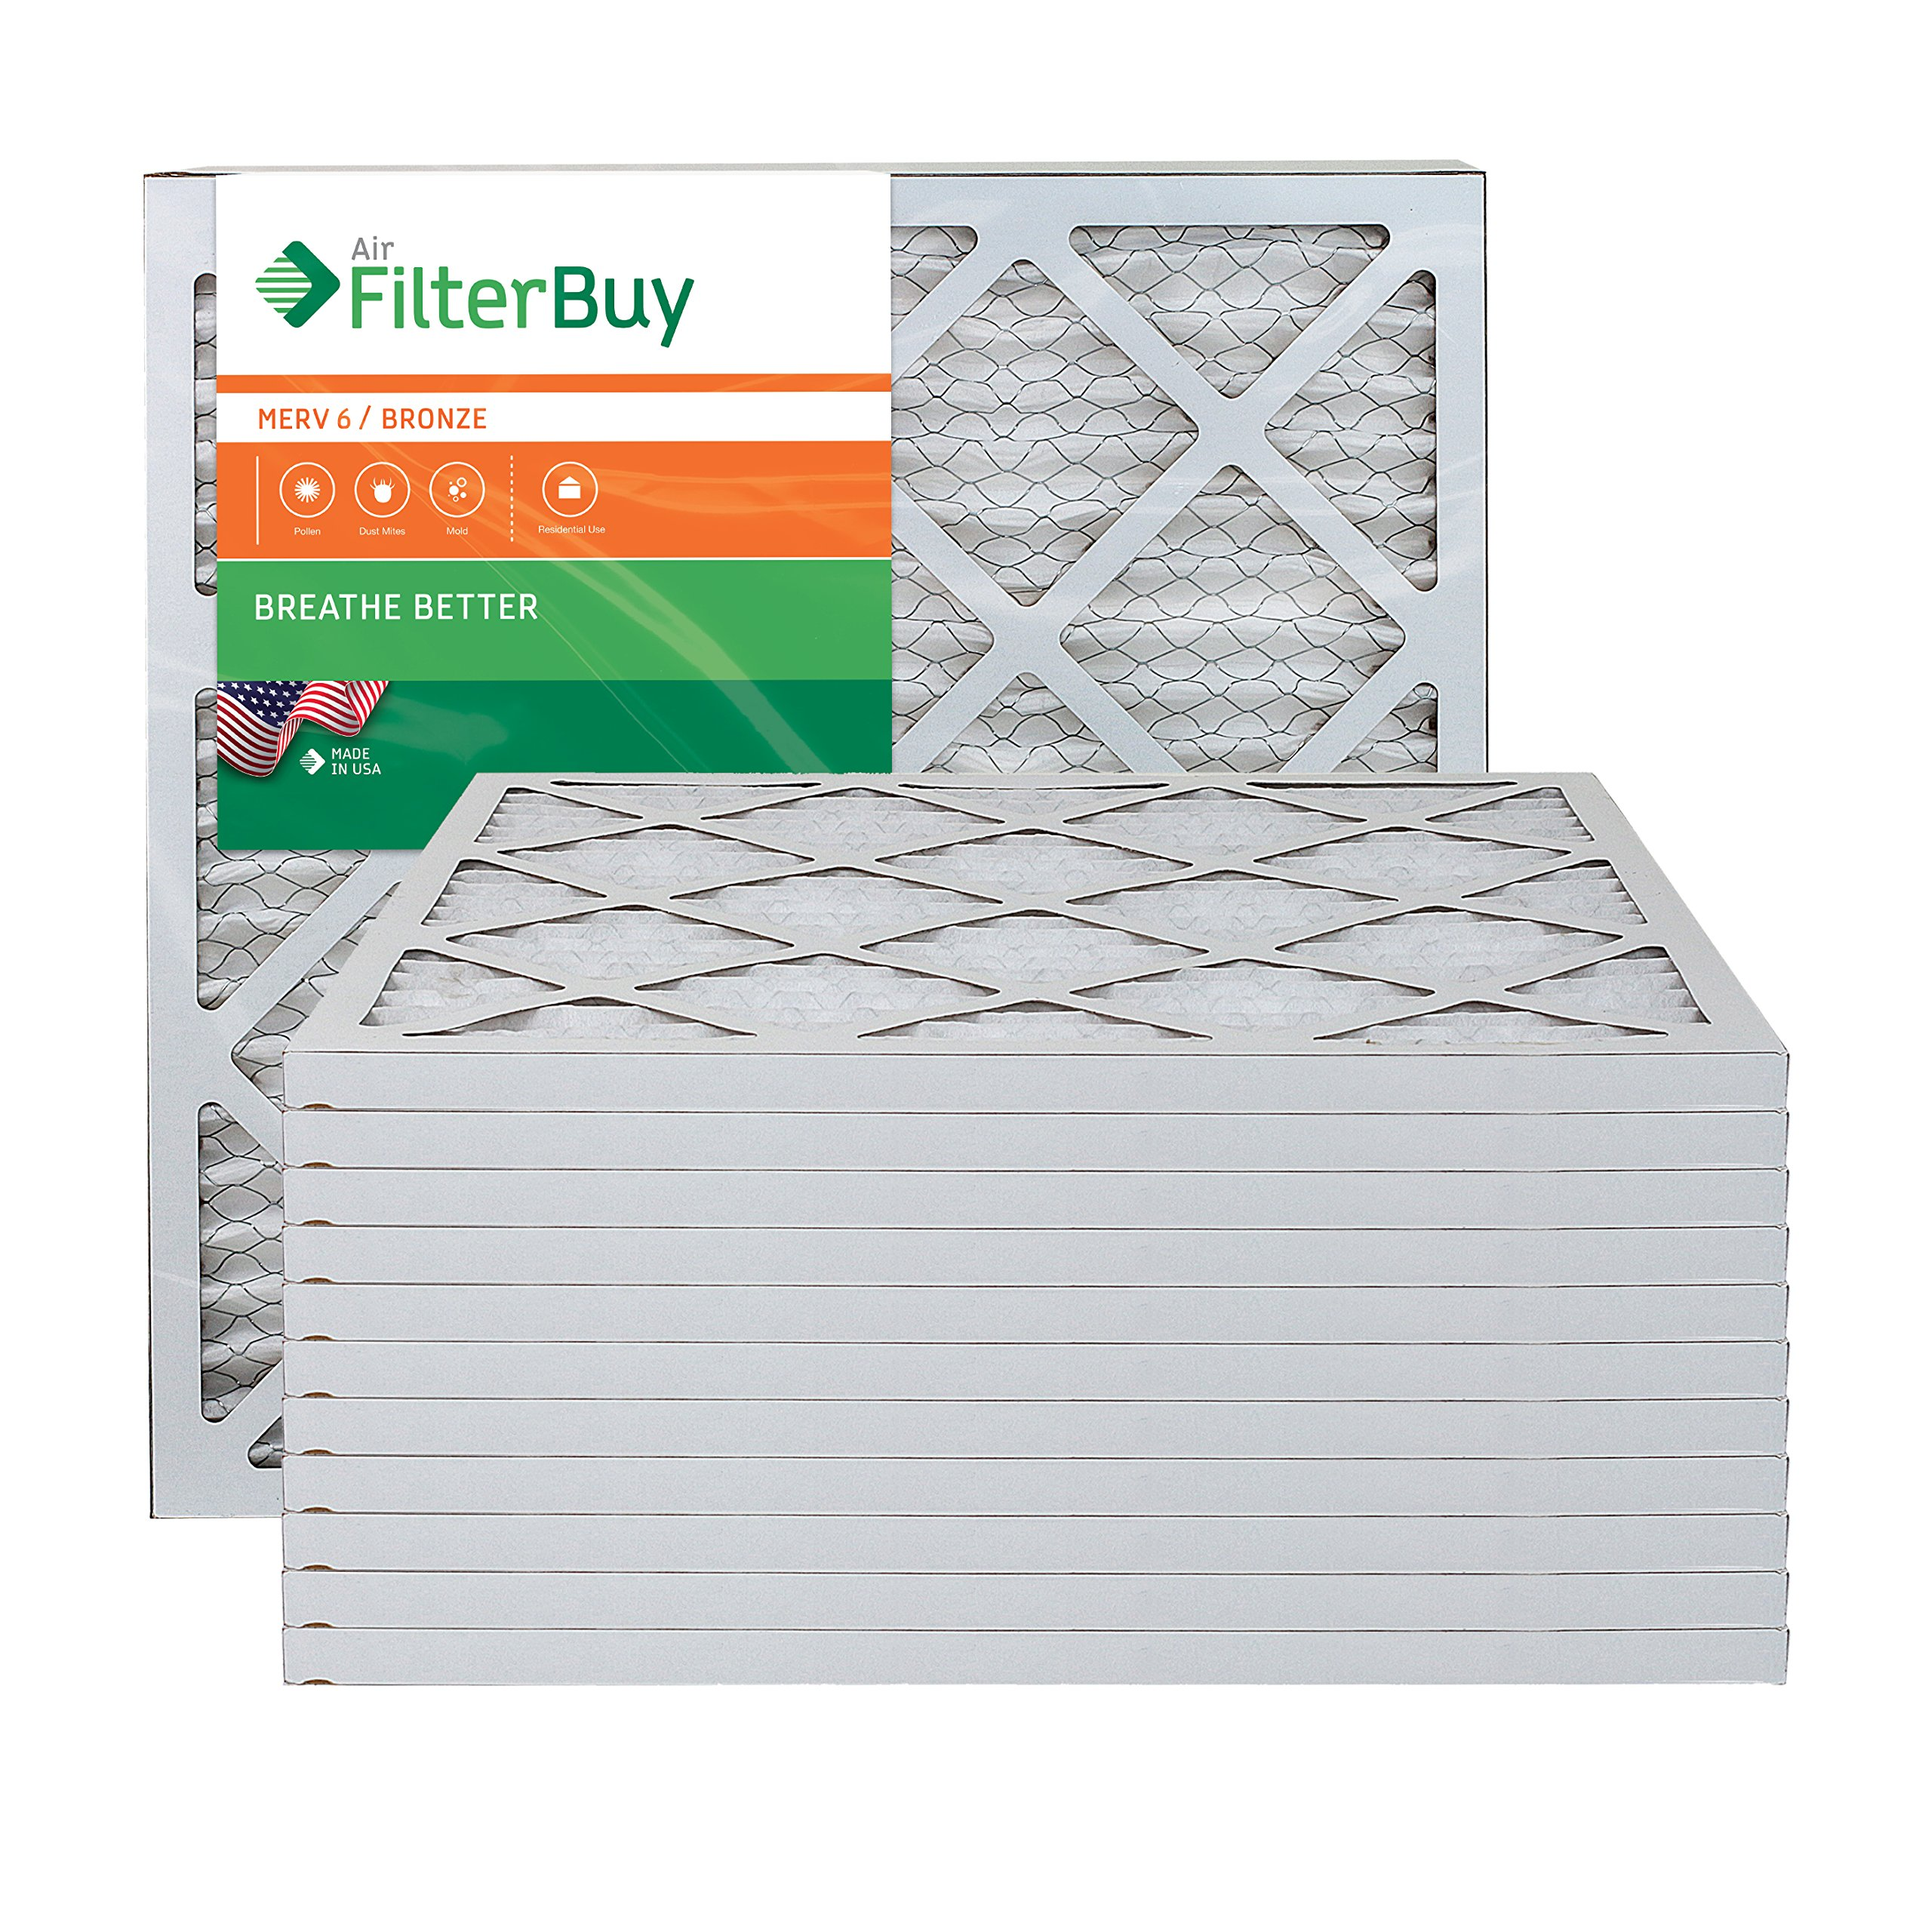 AFB Bronze MERV 6 21x22x1 Pleated AC Furnace Air Filter. Pack of 12 Filters. 100% produced in the USA.